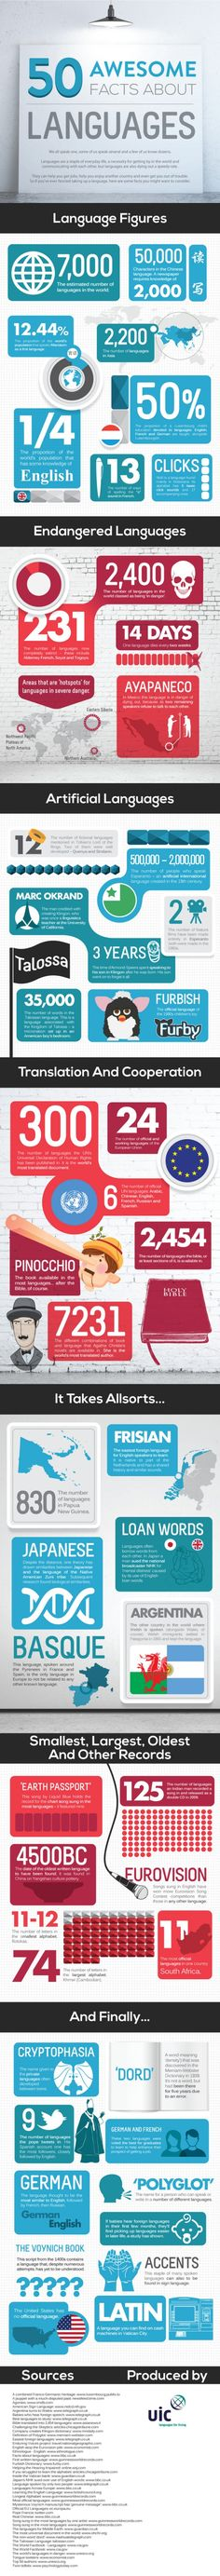 50 Awesome Facts About Languages